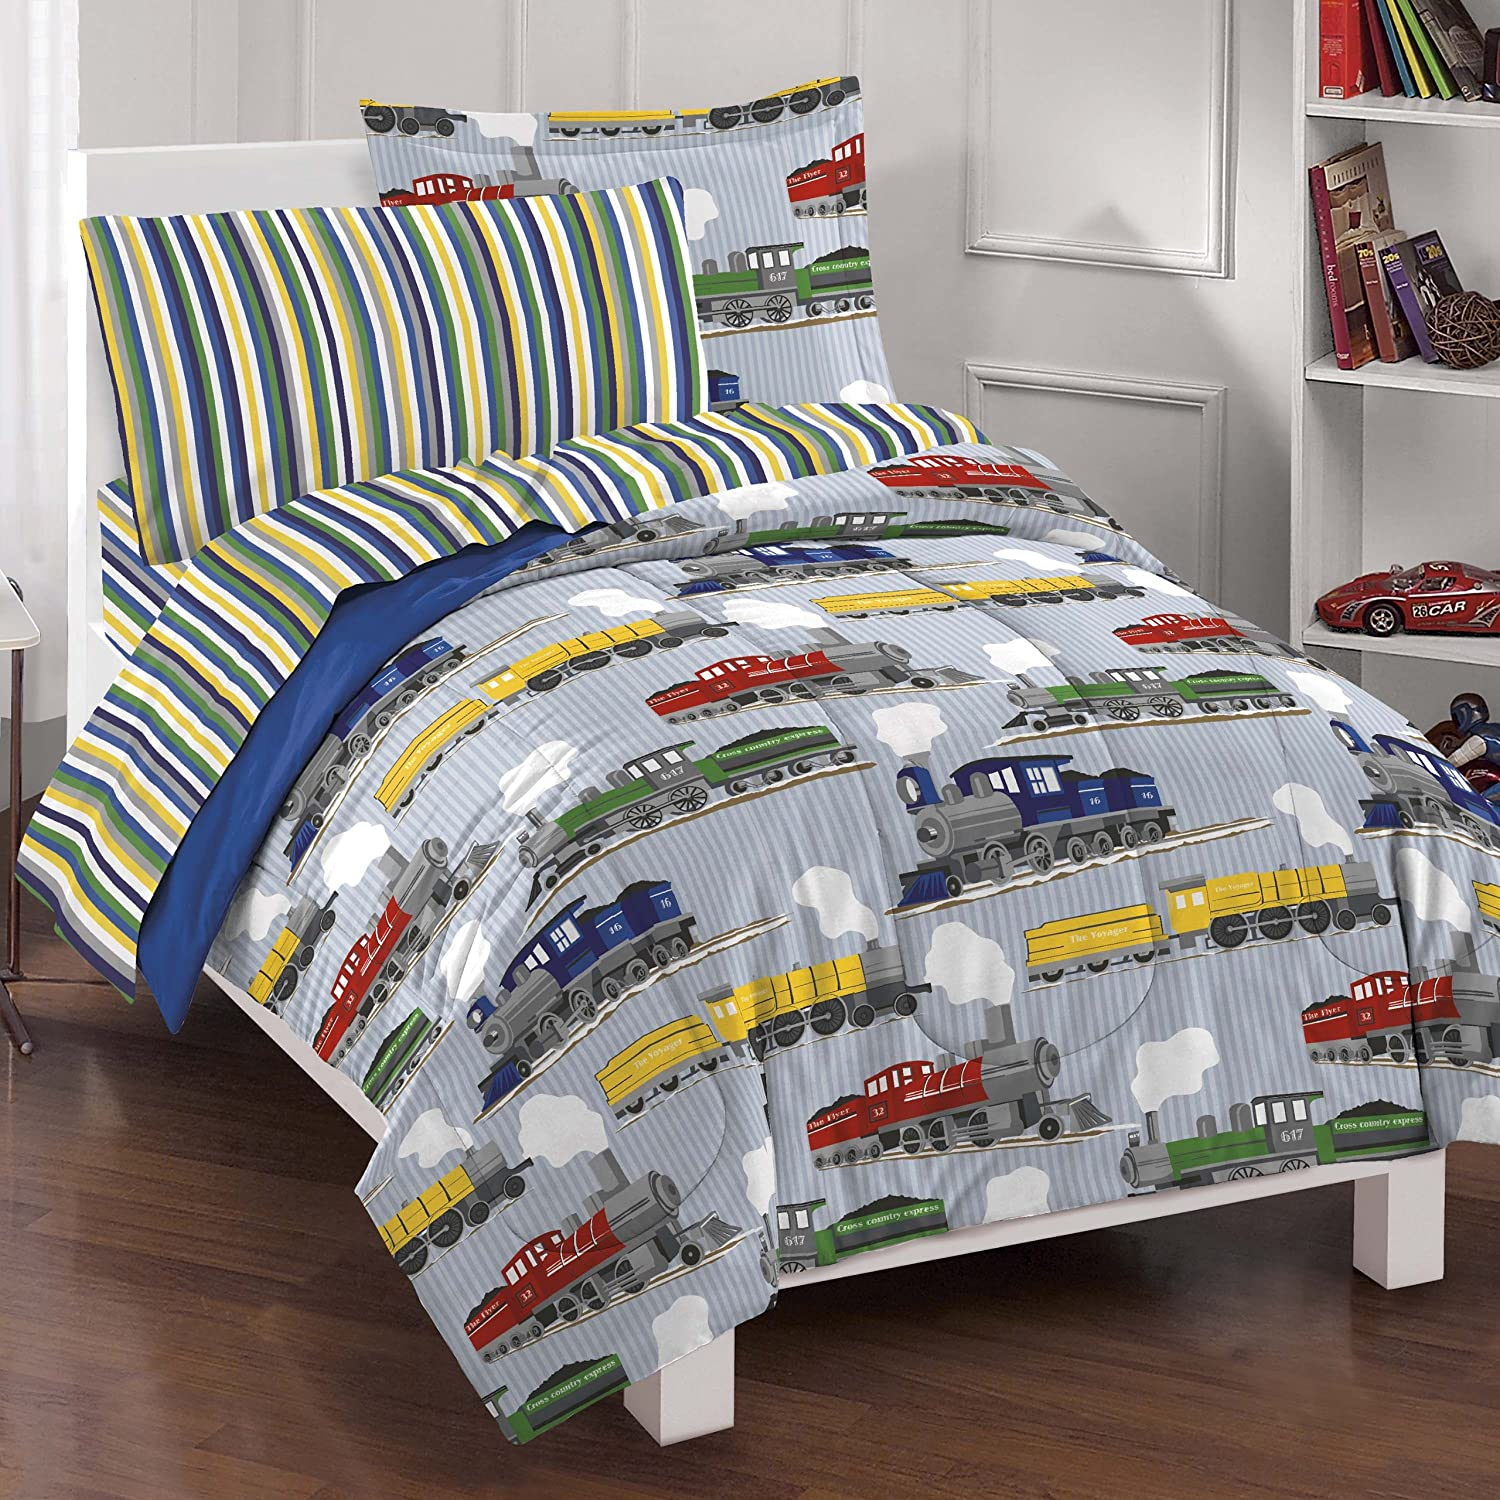 Twin Boy Toddler Bed Comforter